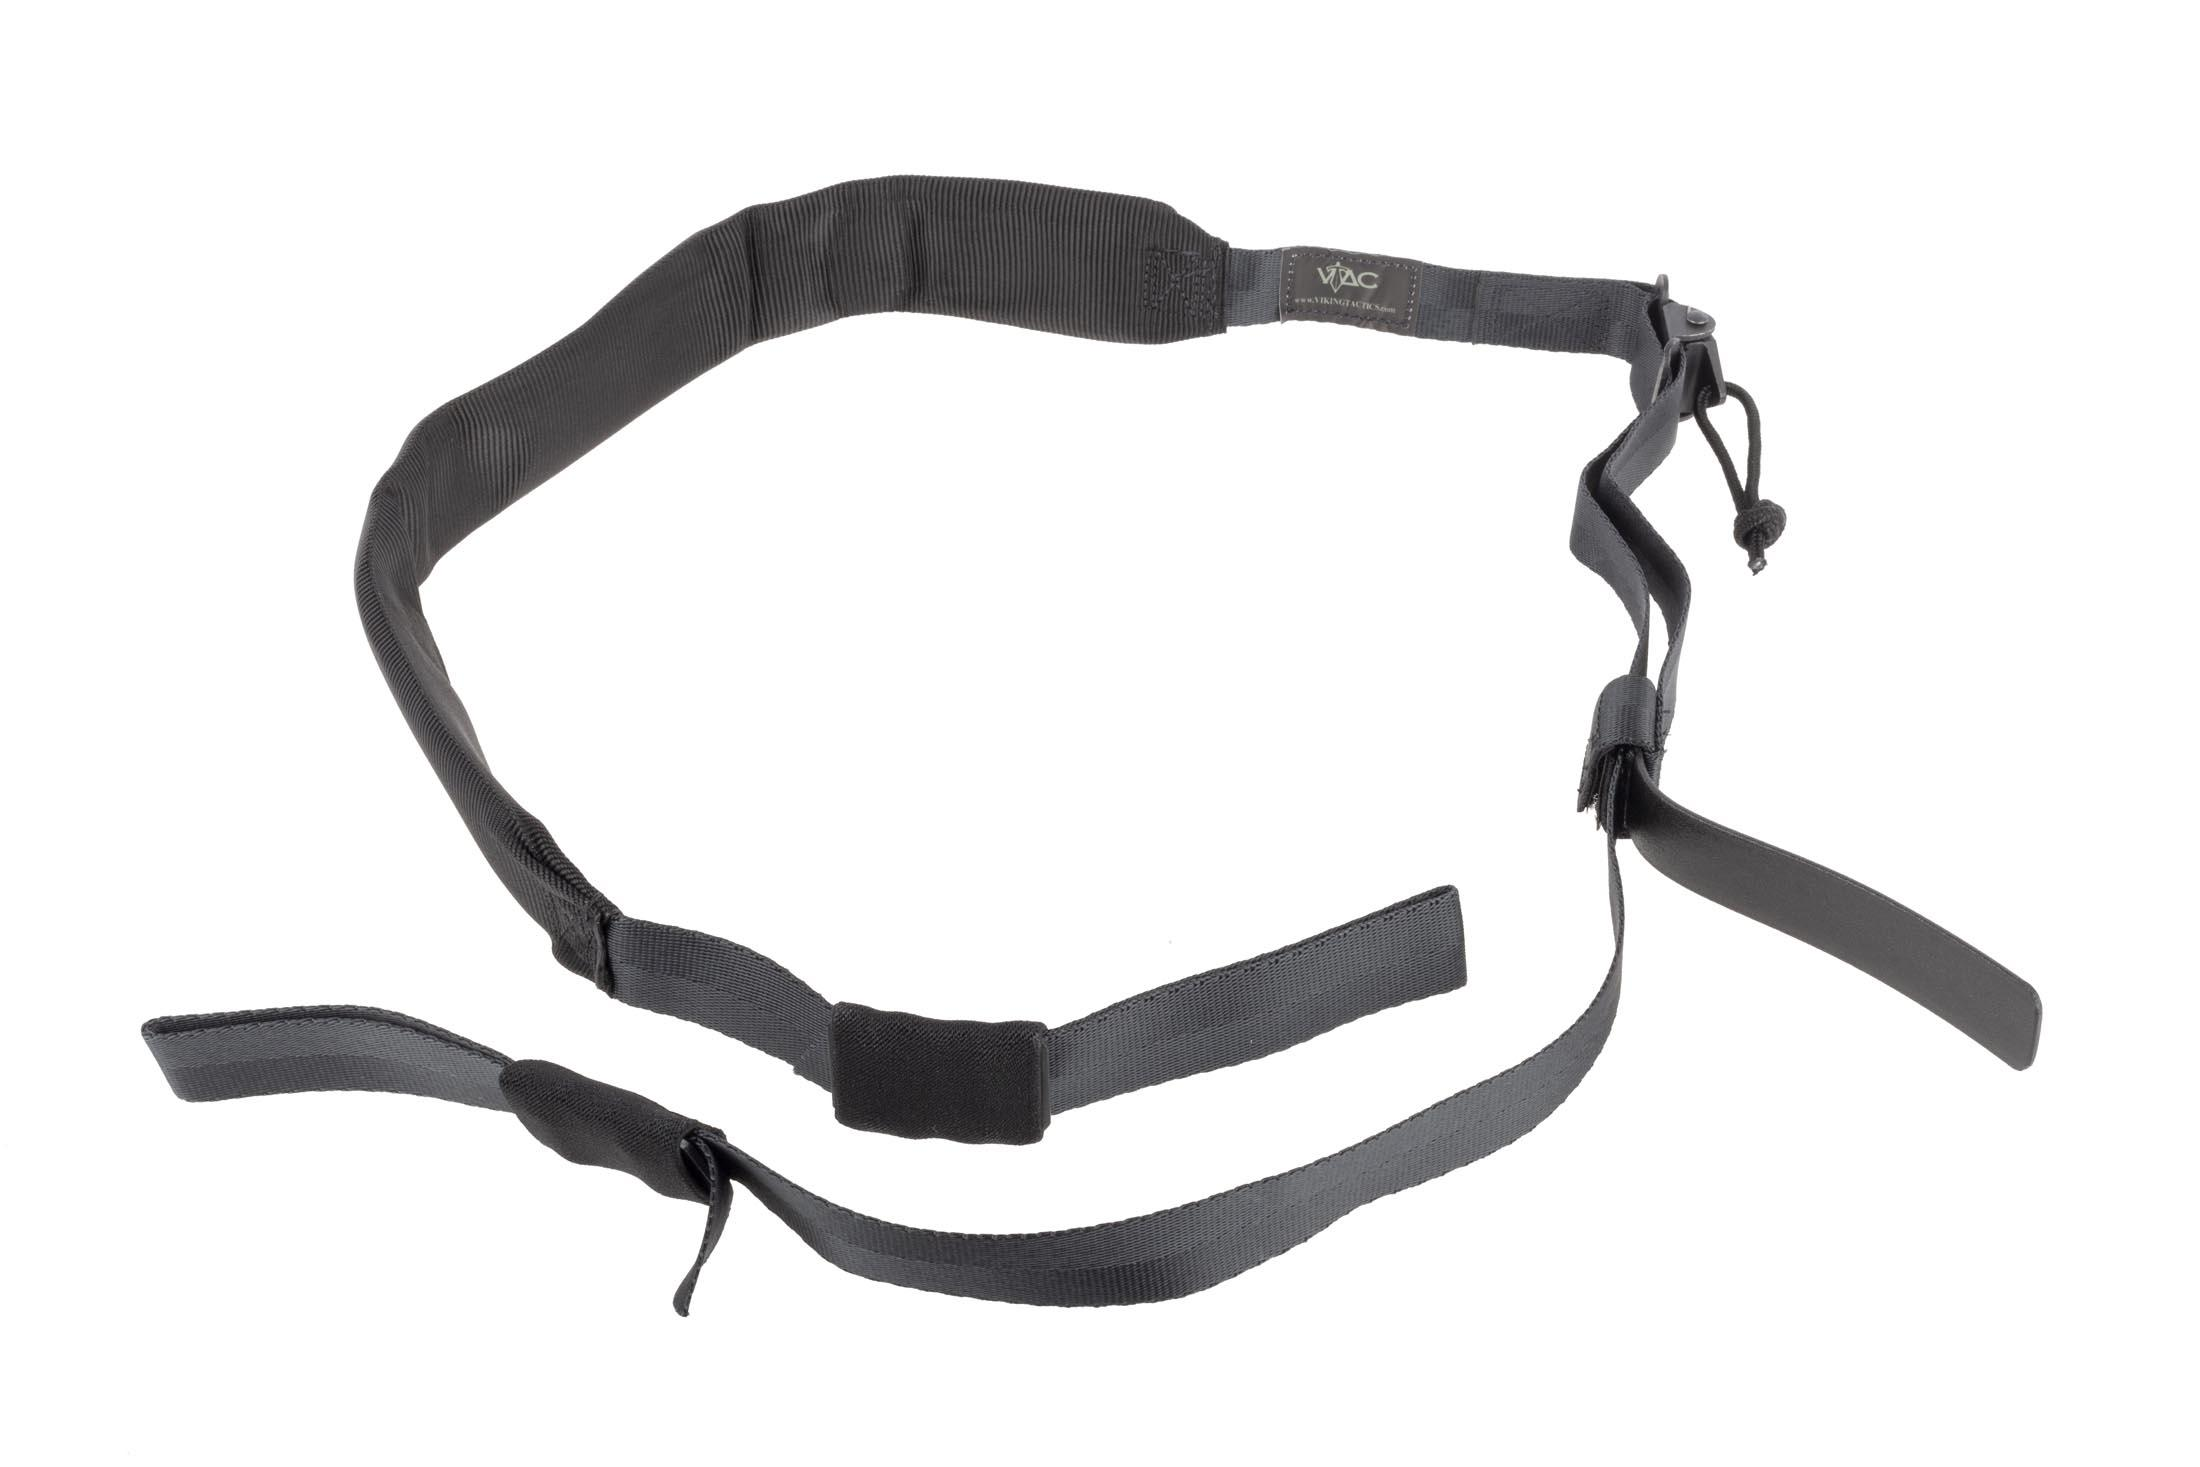 The Viking Tactics Vtac two point wide padded upgraded two point sling in black features durable metal hardware